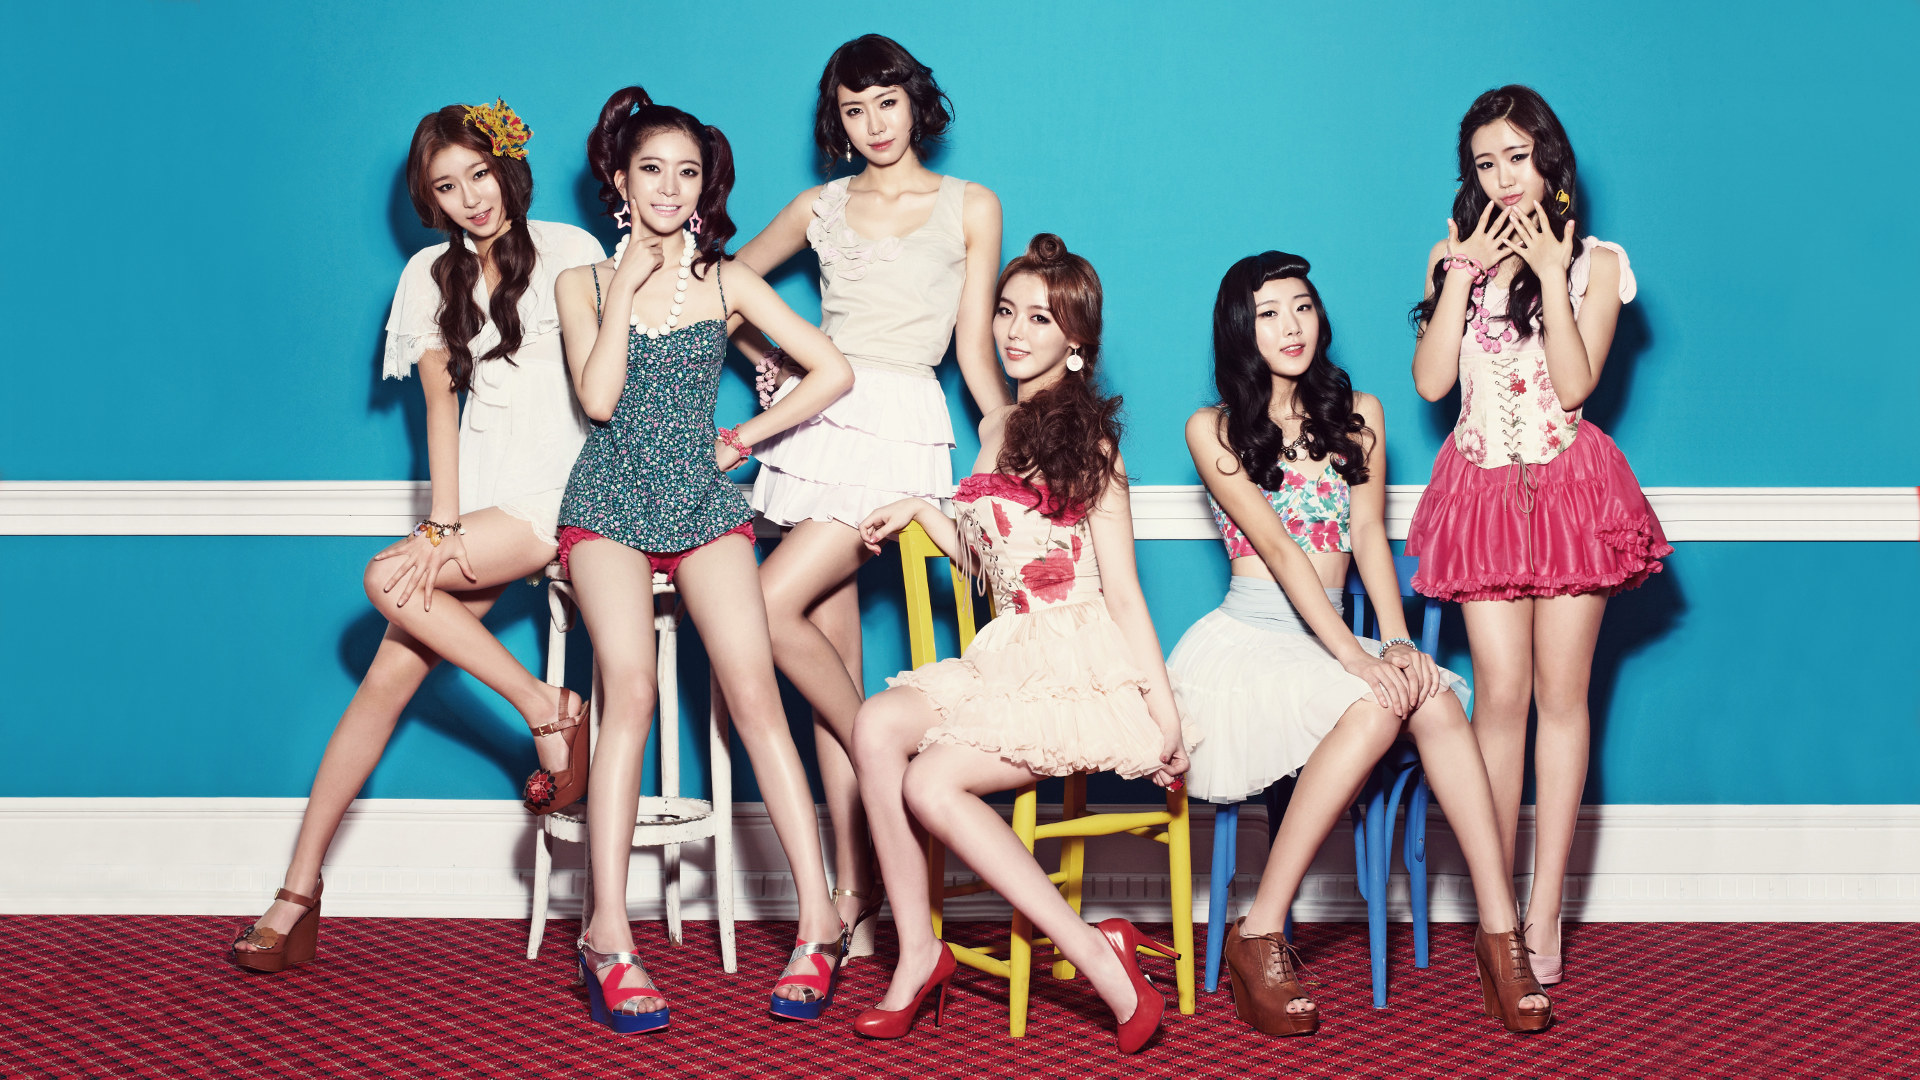 Dal Shabet Desktop Kpop Girl Band Korea wallpaper by hoantube2014 1920x1080